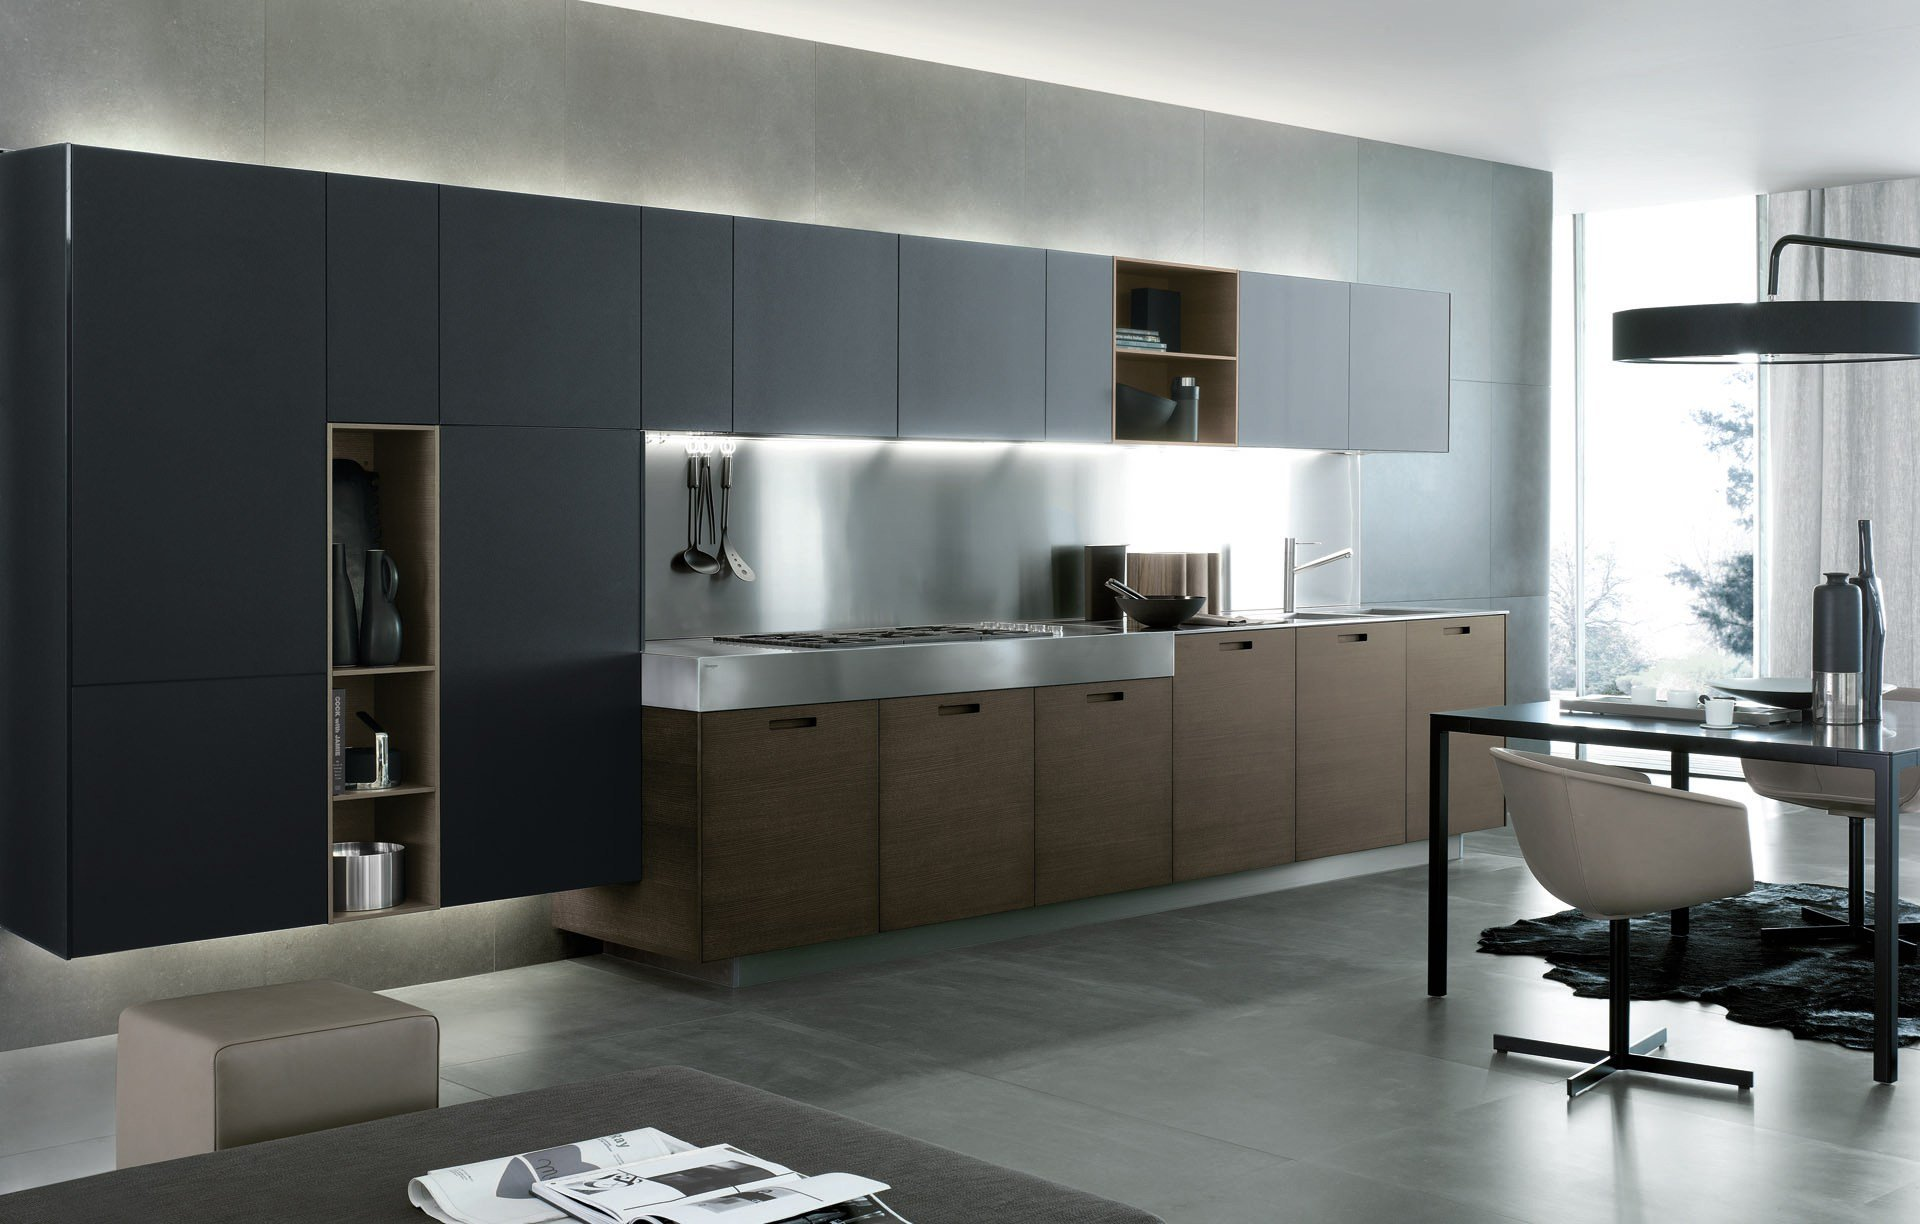 Cucina laccata lineare in legno kyton by varenna by poliform - Cucina varenna poliform ...